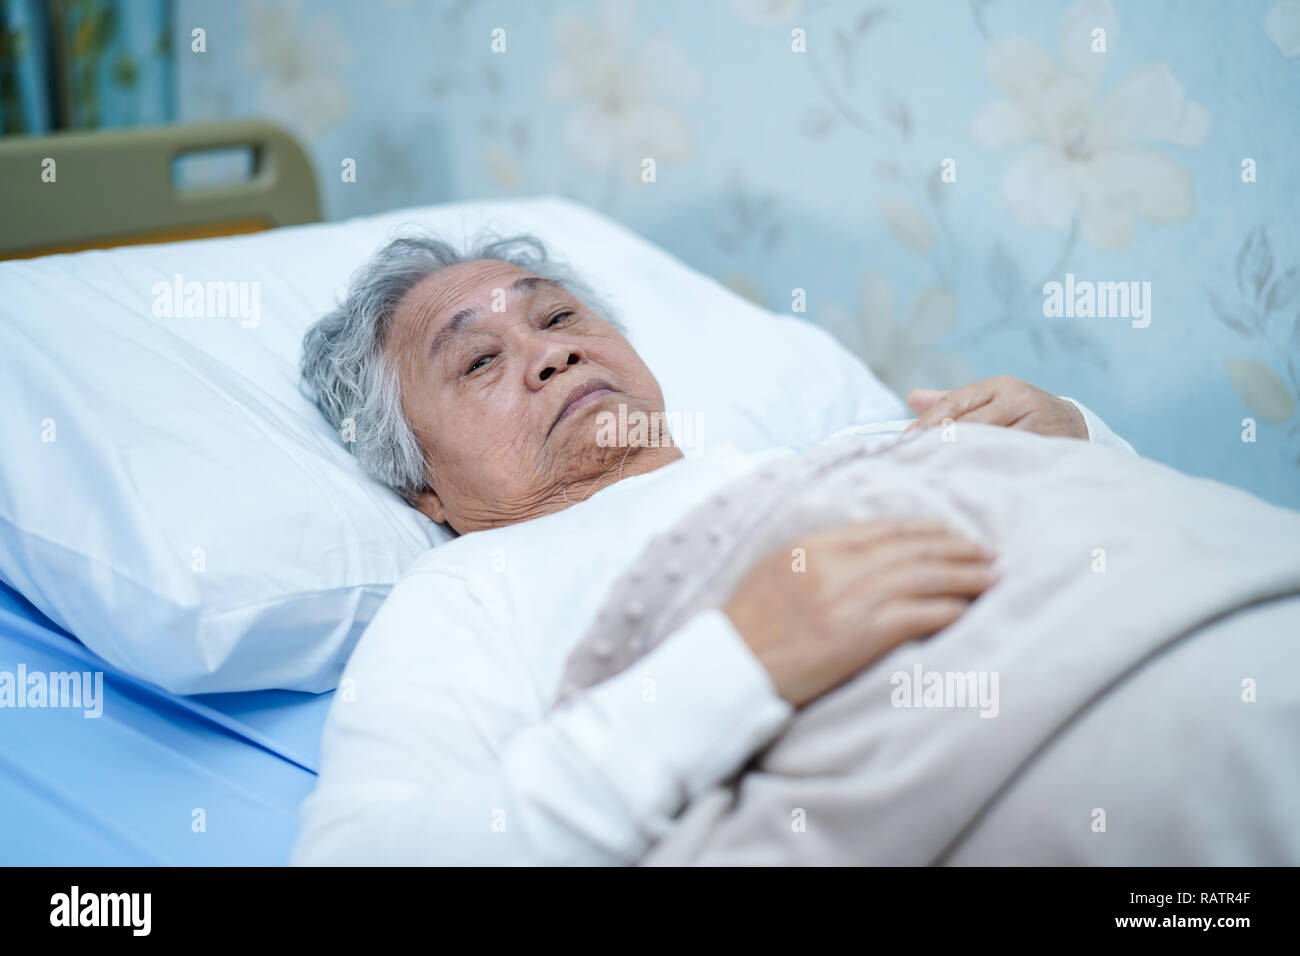 Asian senior or elderly old lady woman patient smile bright face with strong health while lying on bed in nursing hospital ward : healthy medicine. Stock Photo